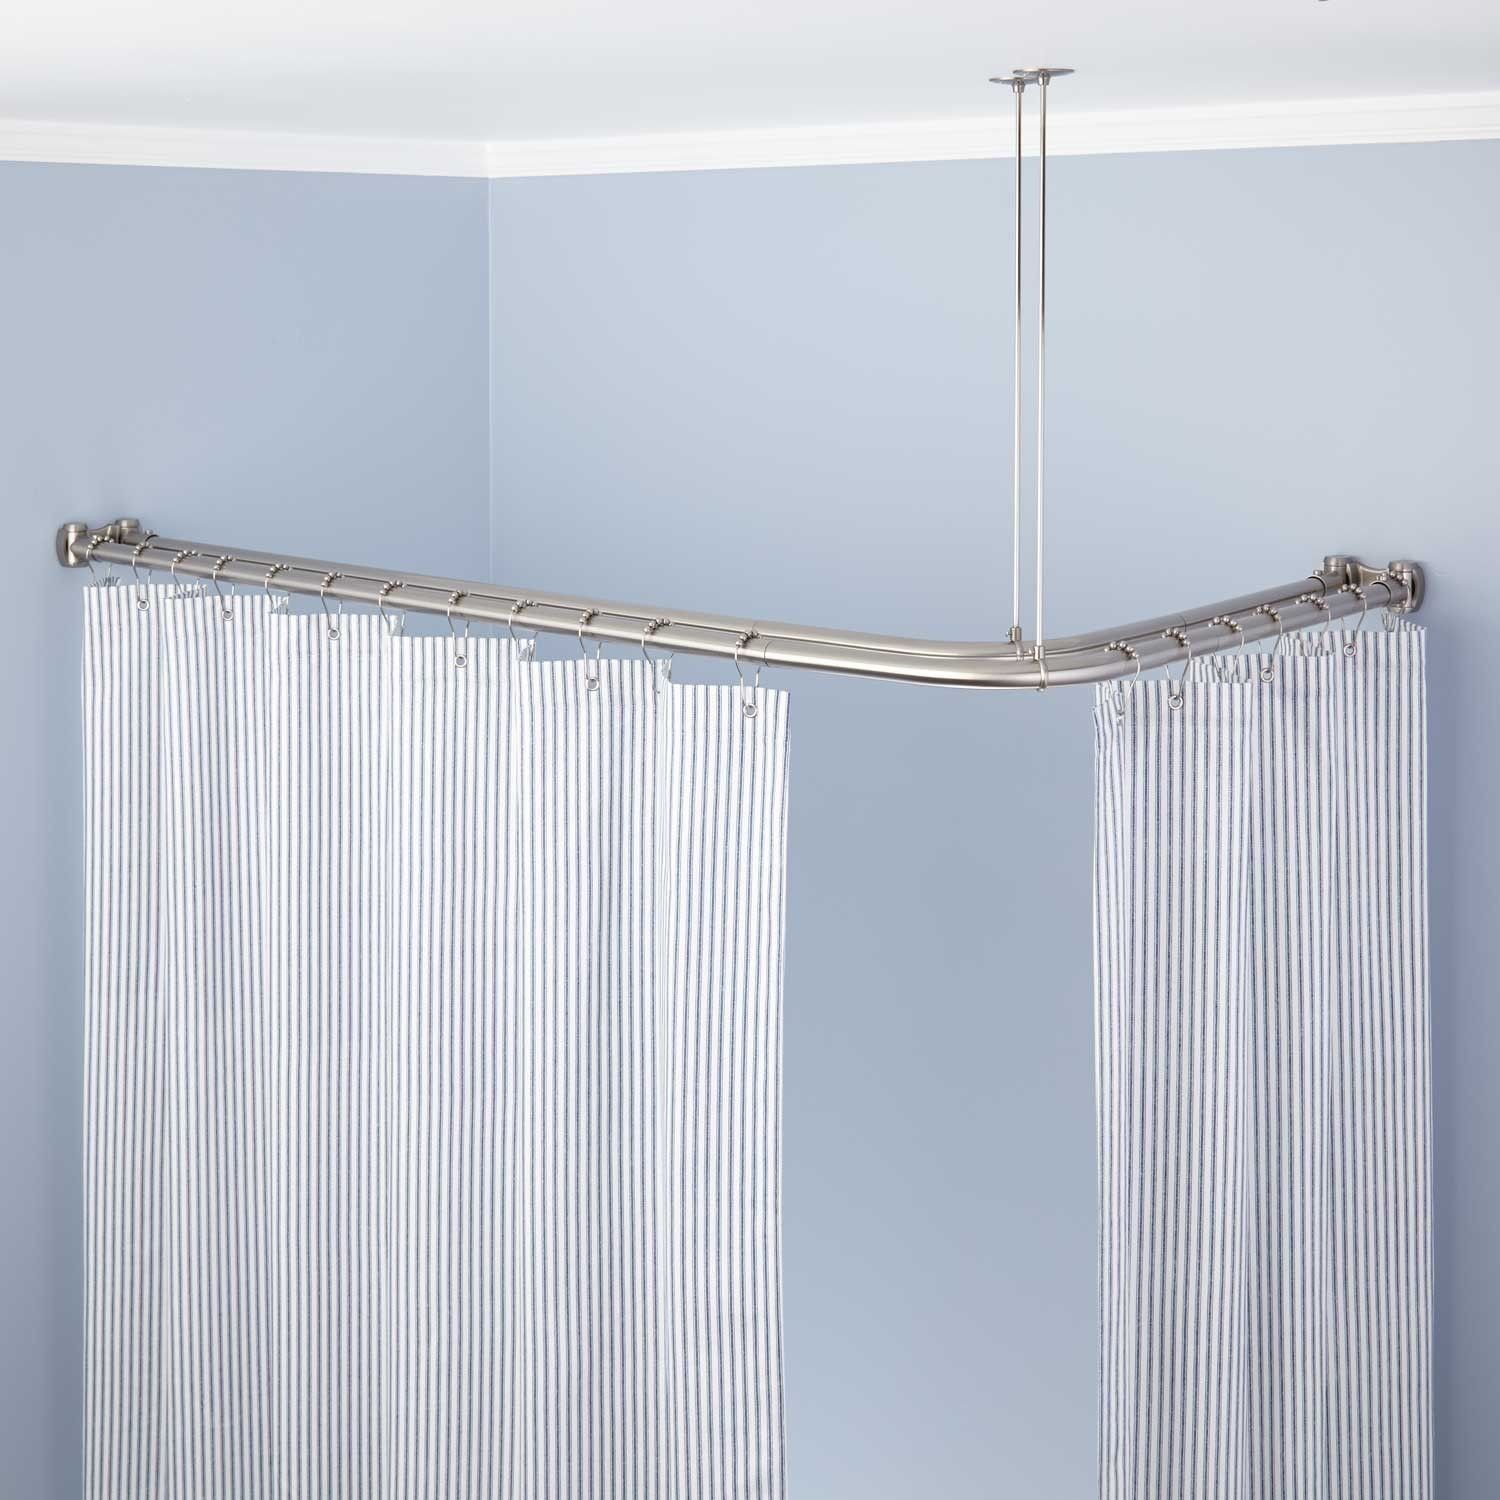 New Curved Corner Shower Curtain Rod Shower Curtain Rods Diy